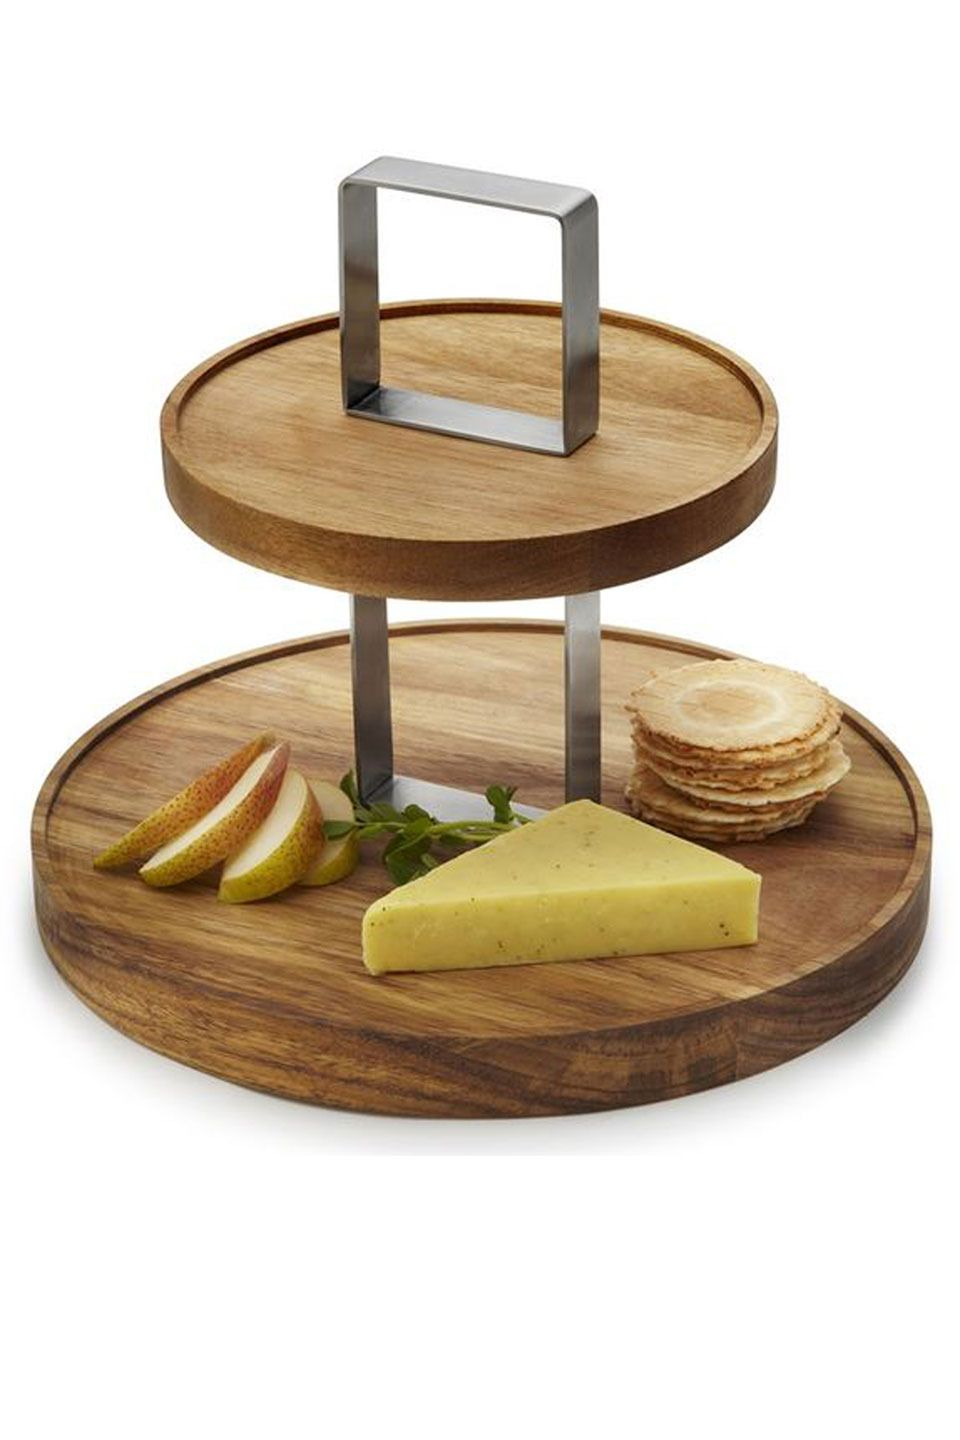 Salt And Pepper 2 Tier Wooden Serving Platter Wooden Cake Stands Wooden Serving Platters Cake Stand